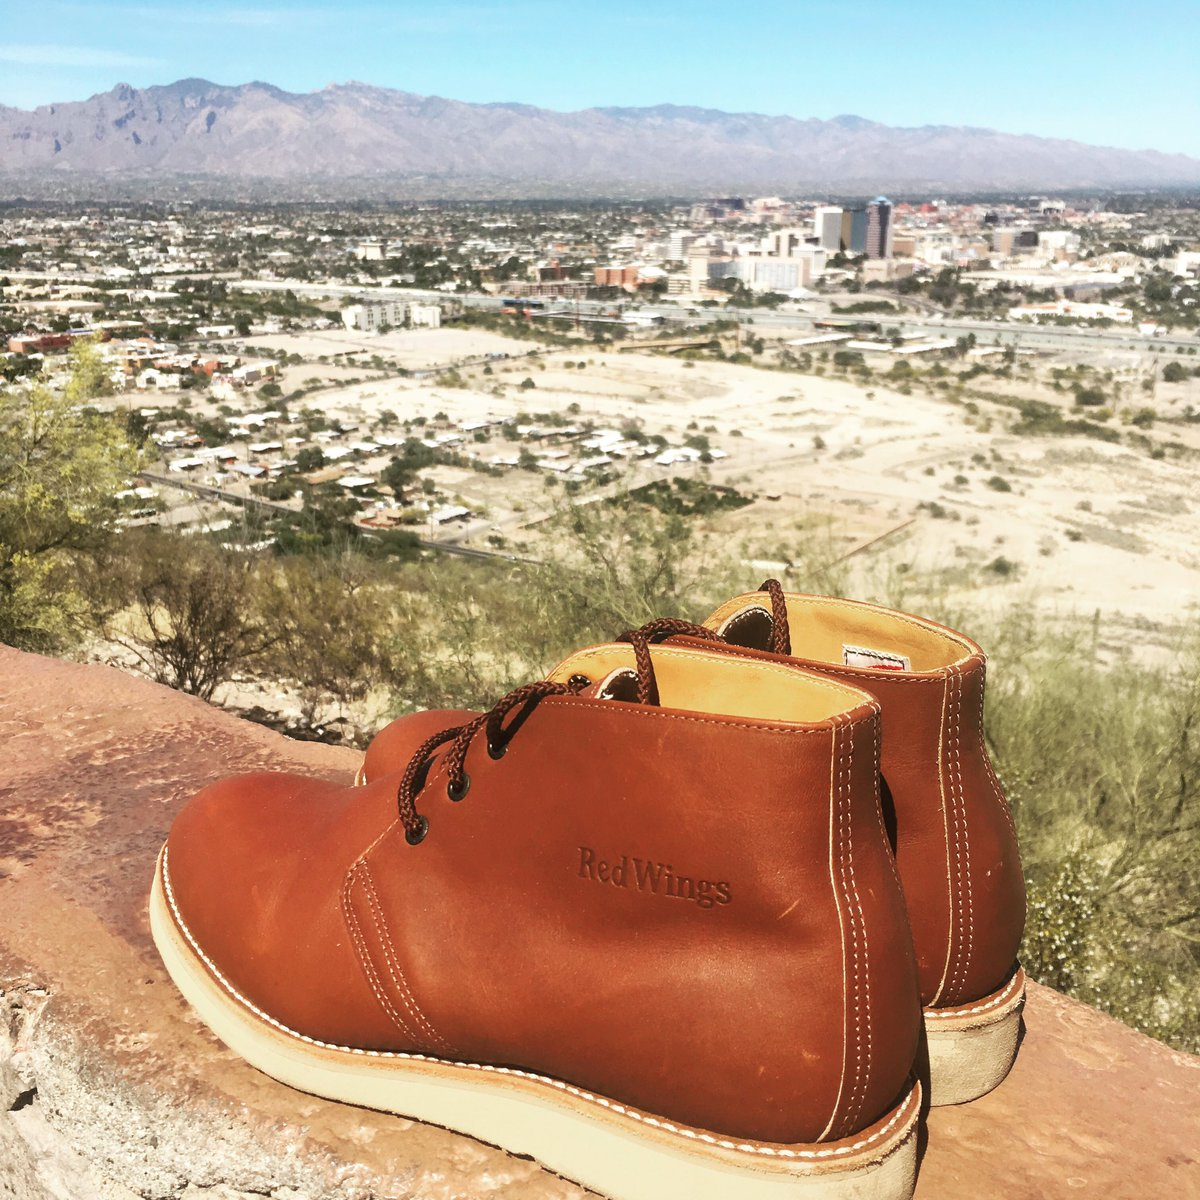 Red Wing Shoes Tucson Arizona